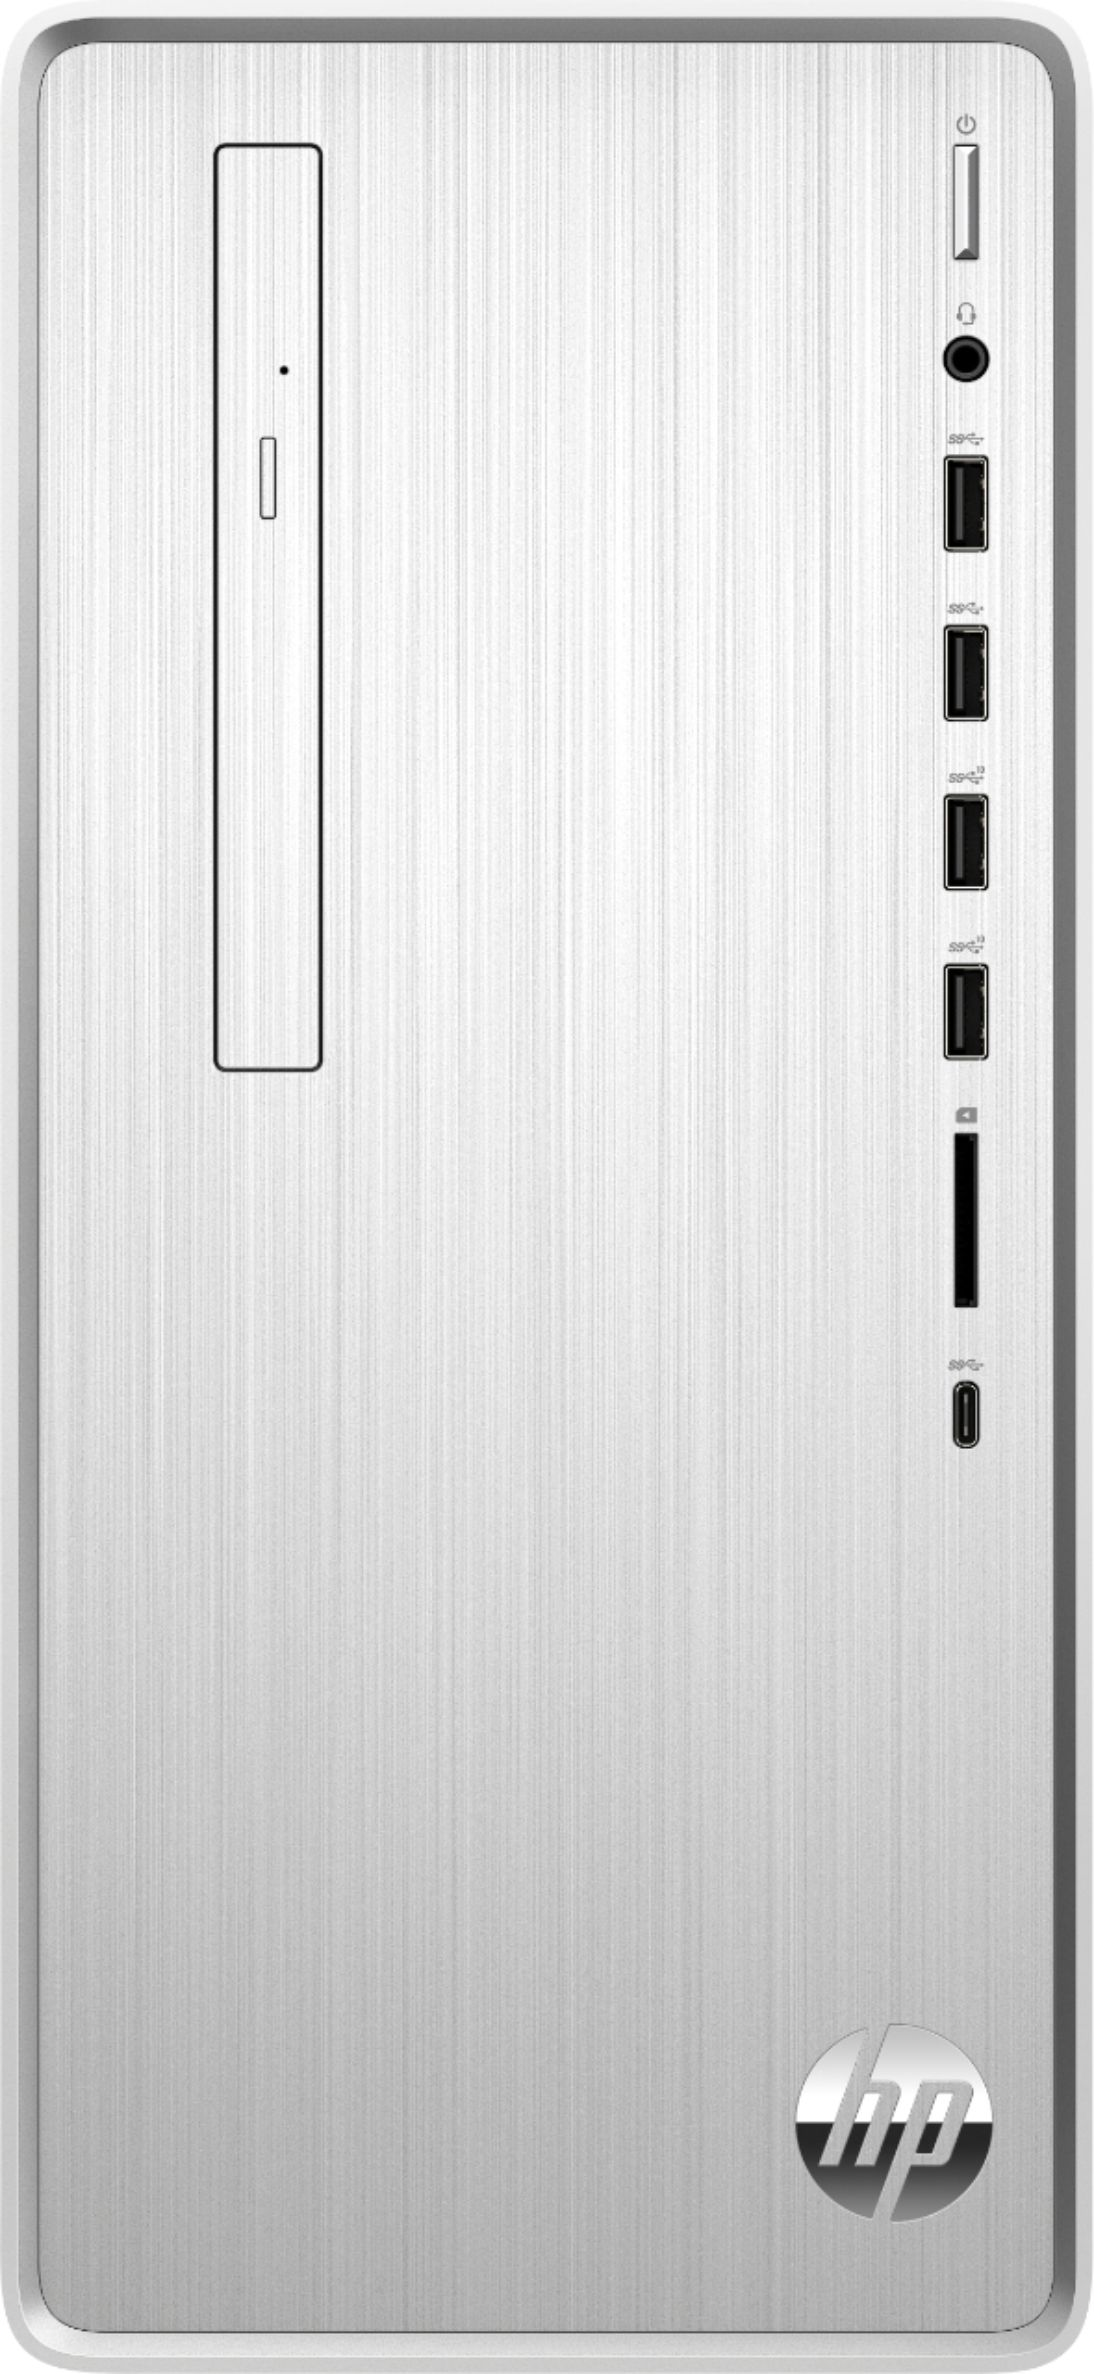 Front Zoom. Pavilion Desktop - Intel Core i7 - 8GB Memory - 256GB SSD - HP Finish In Natural Silver.